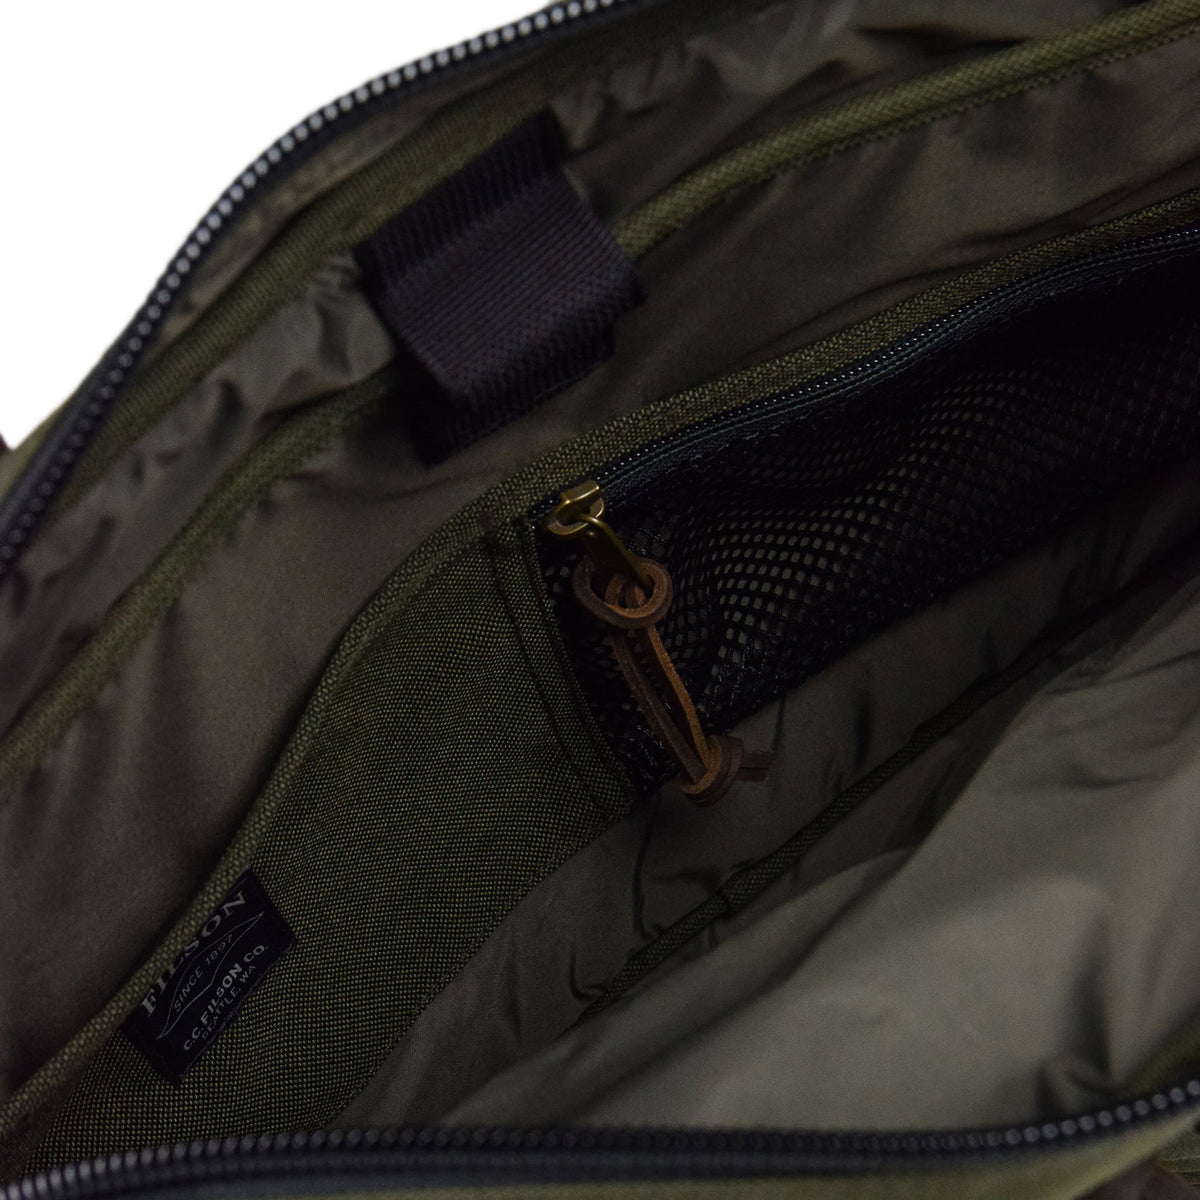 Filson Dryden Briefcase Shoulder Bag Otter Green Inside Pockets